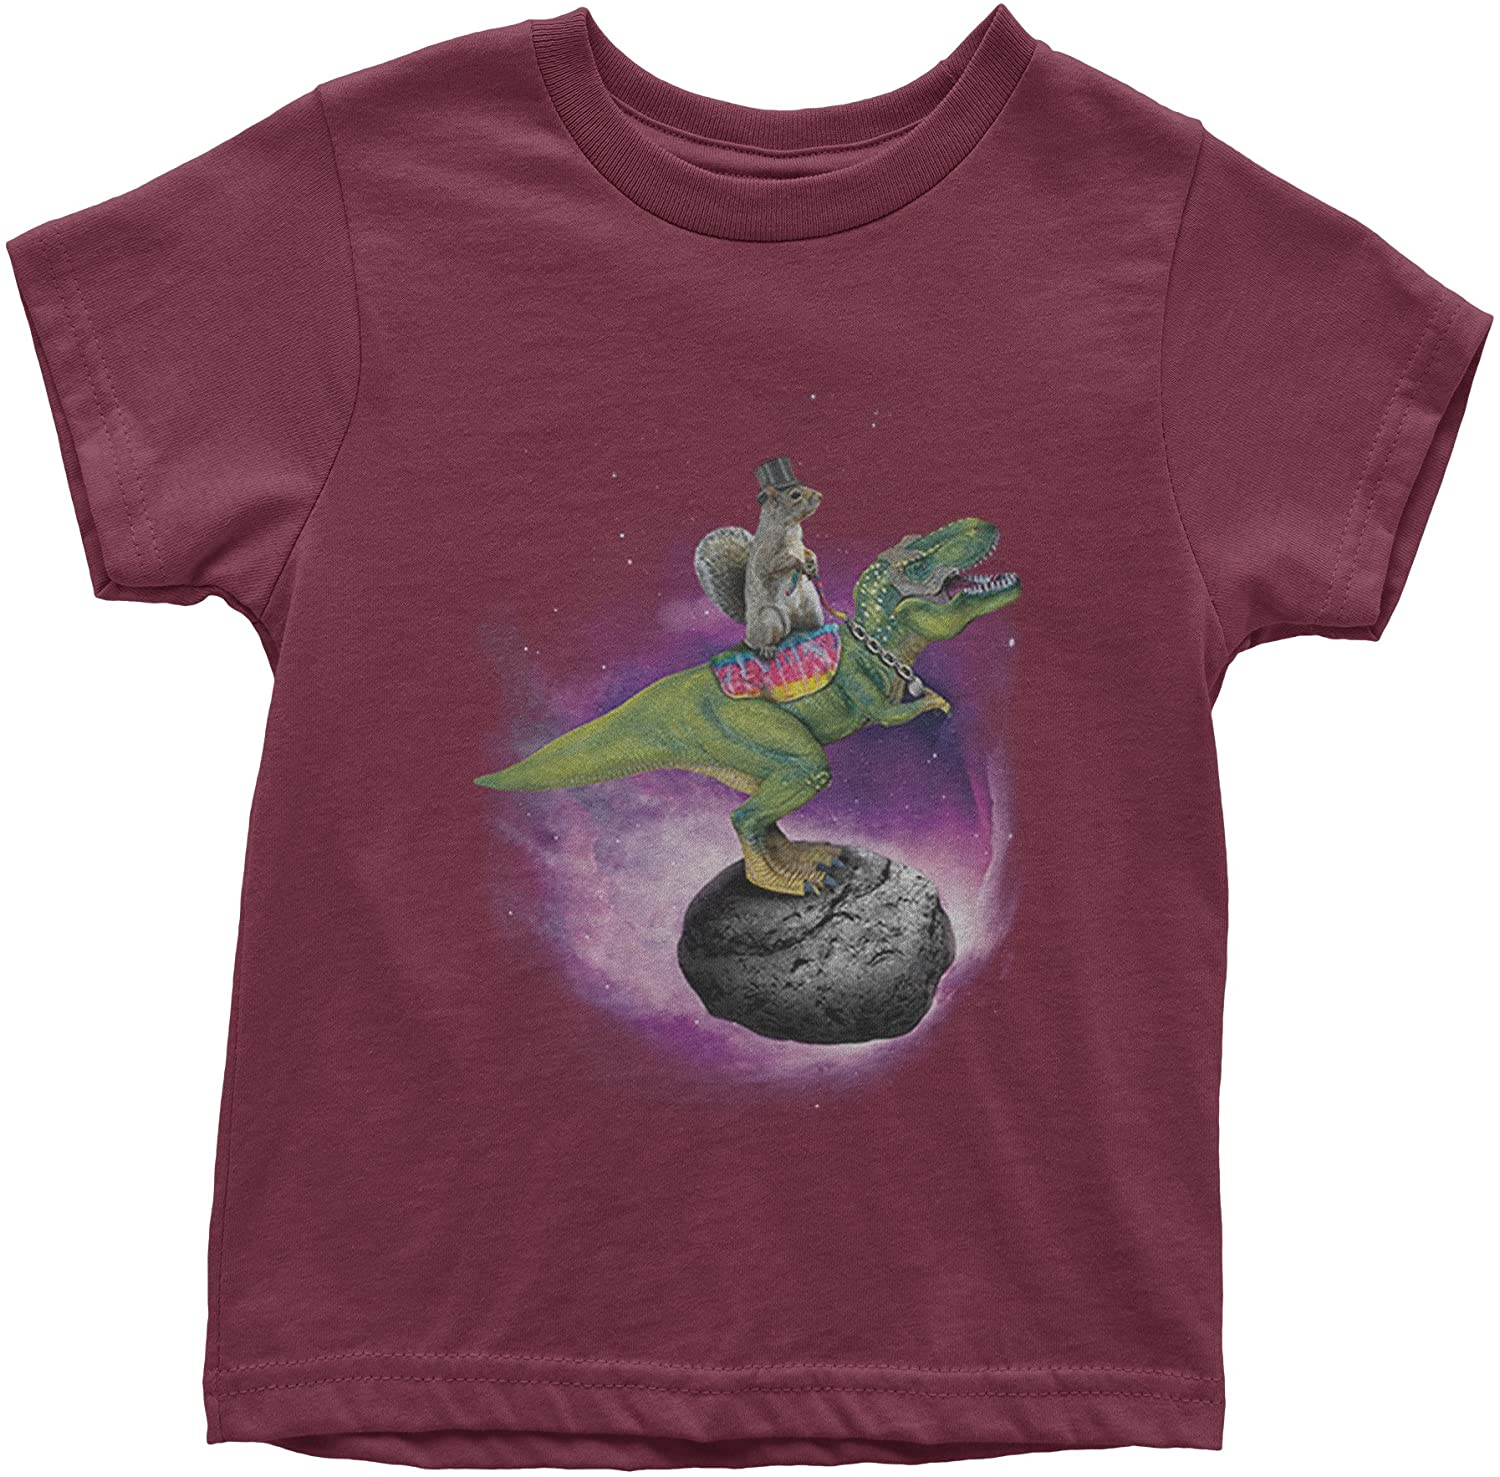 Expression Tees Squirrel Riding T-Rex Youth T-Shirt